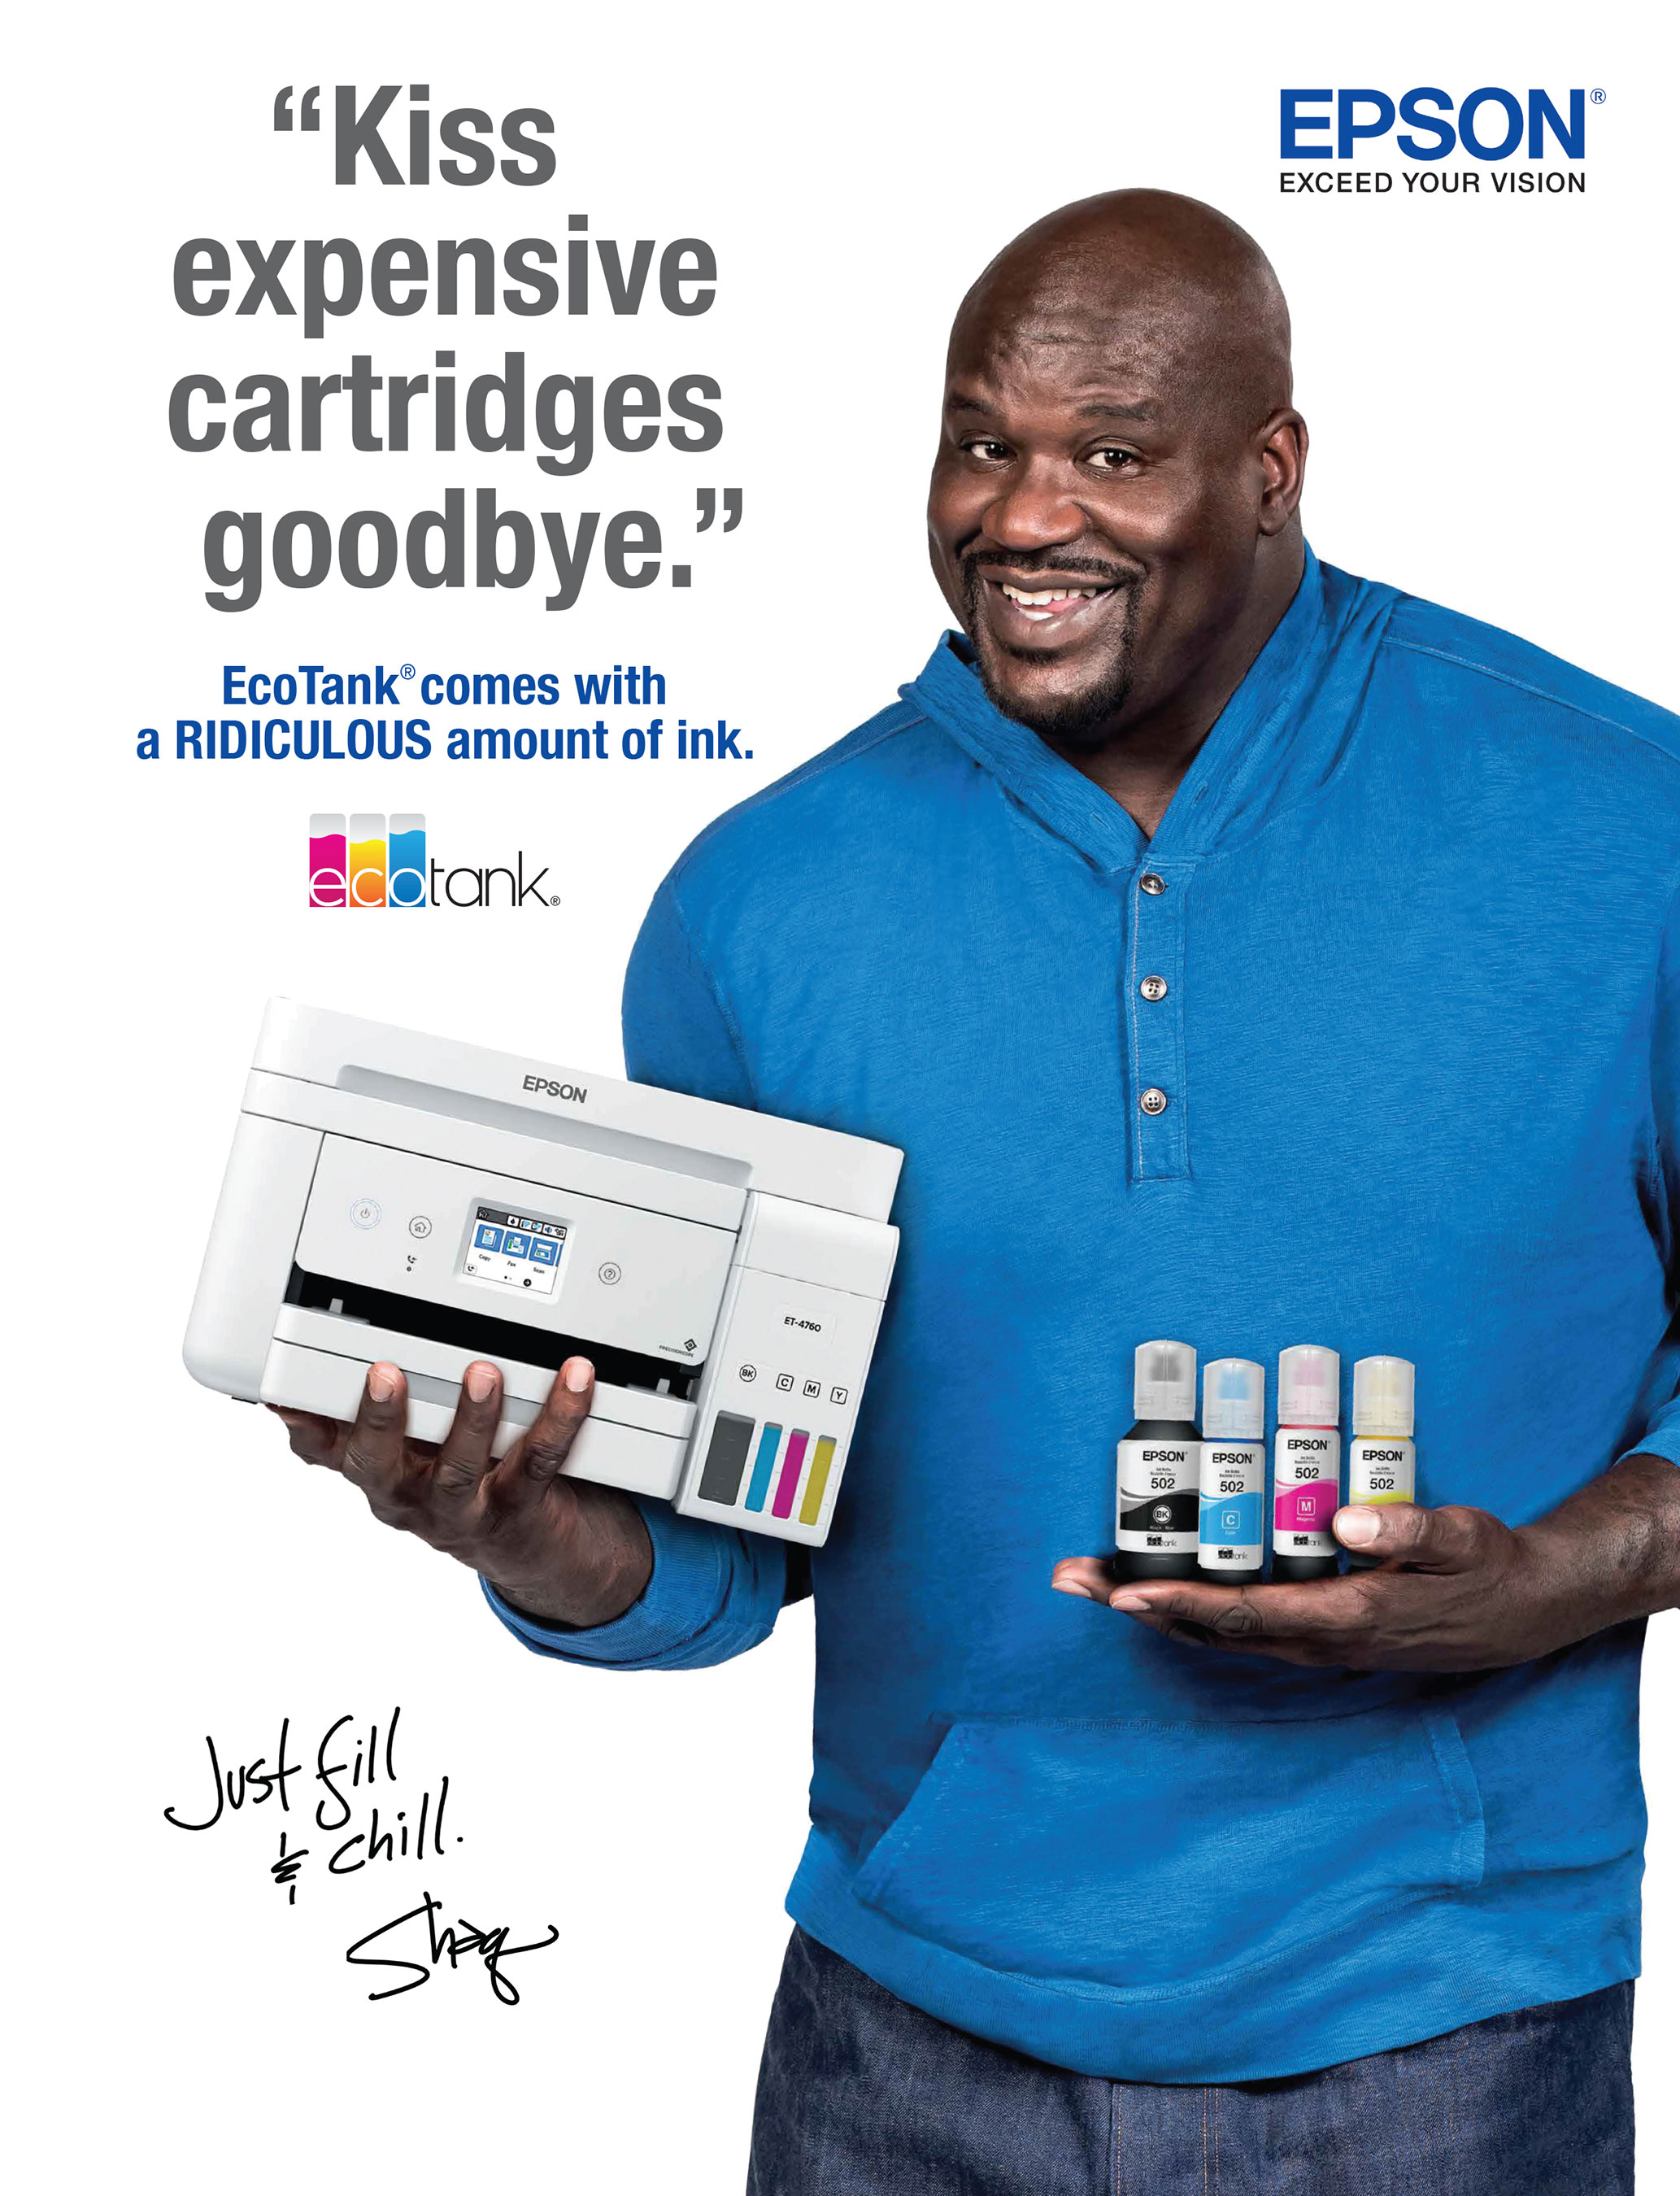 Epson and Shaquille O'Neal Join Forces to Empower Customers